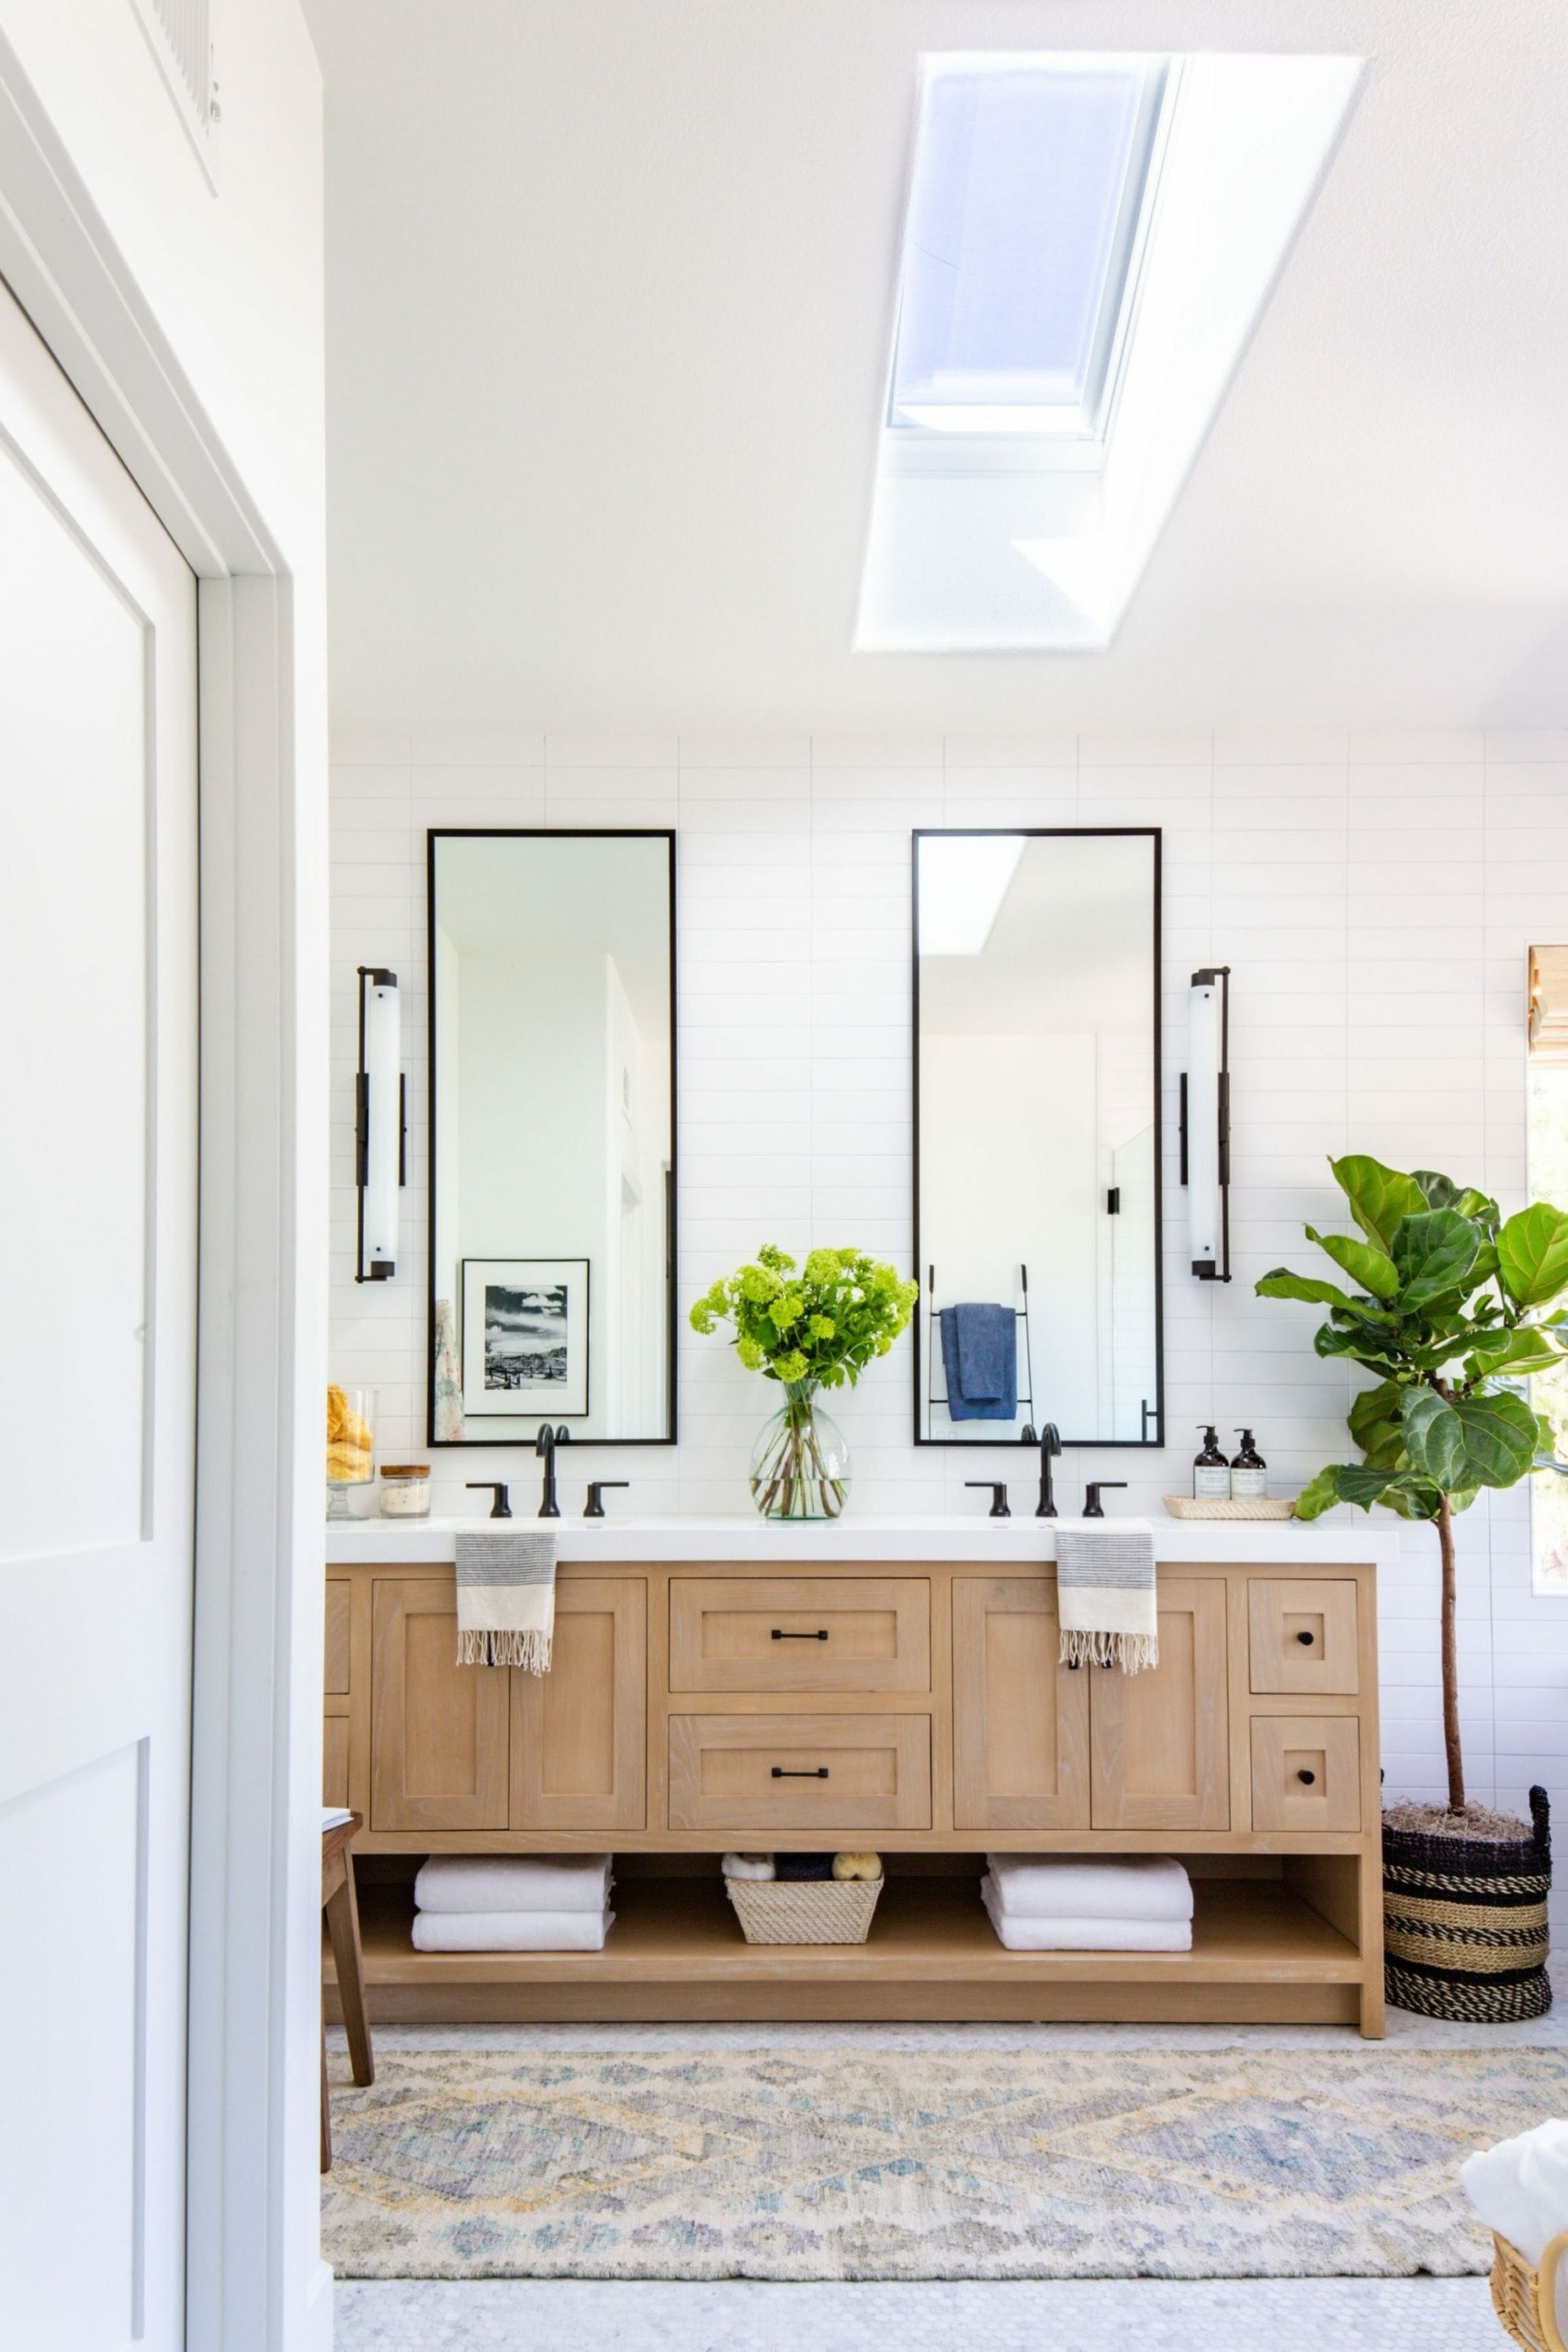 Add a runner to the gray bathroom